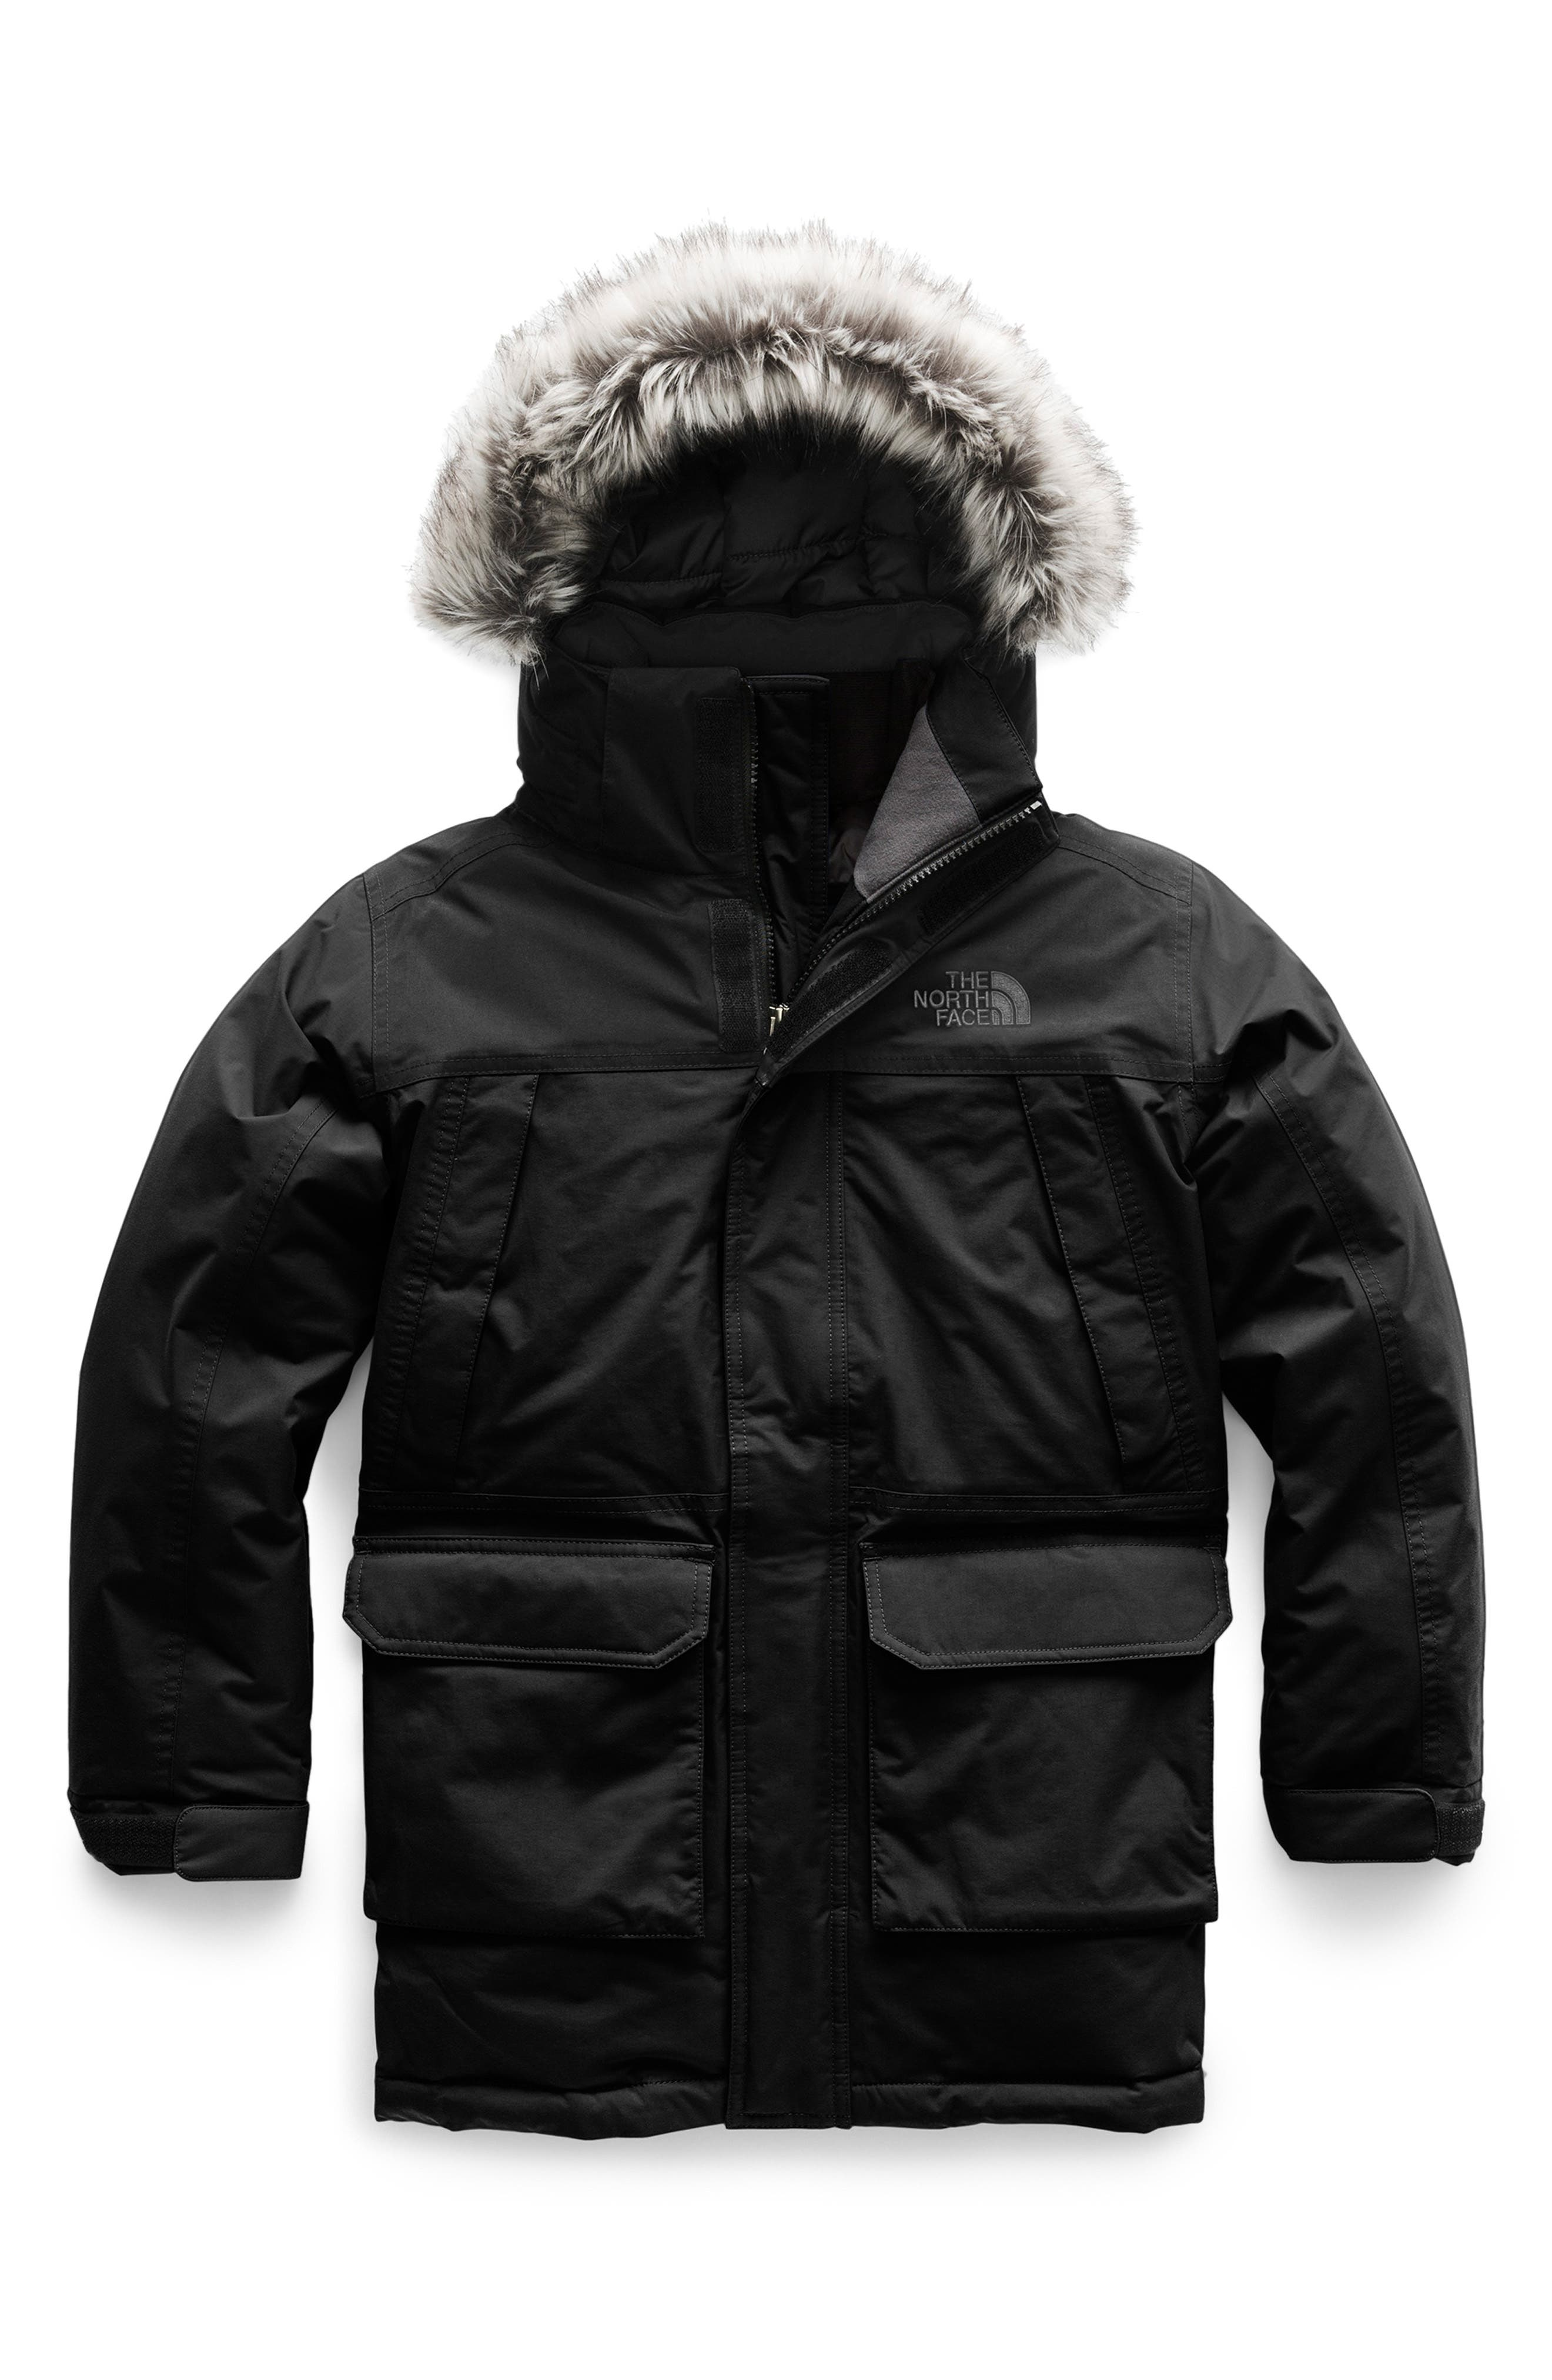 THE NORTH FACE,                             McMurdo Waterproof 550 Fill Power Down Parka with Faux Fur Trim,                             Main thumbnail 1, color,                             001